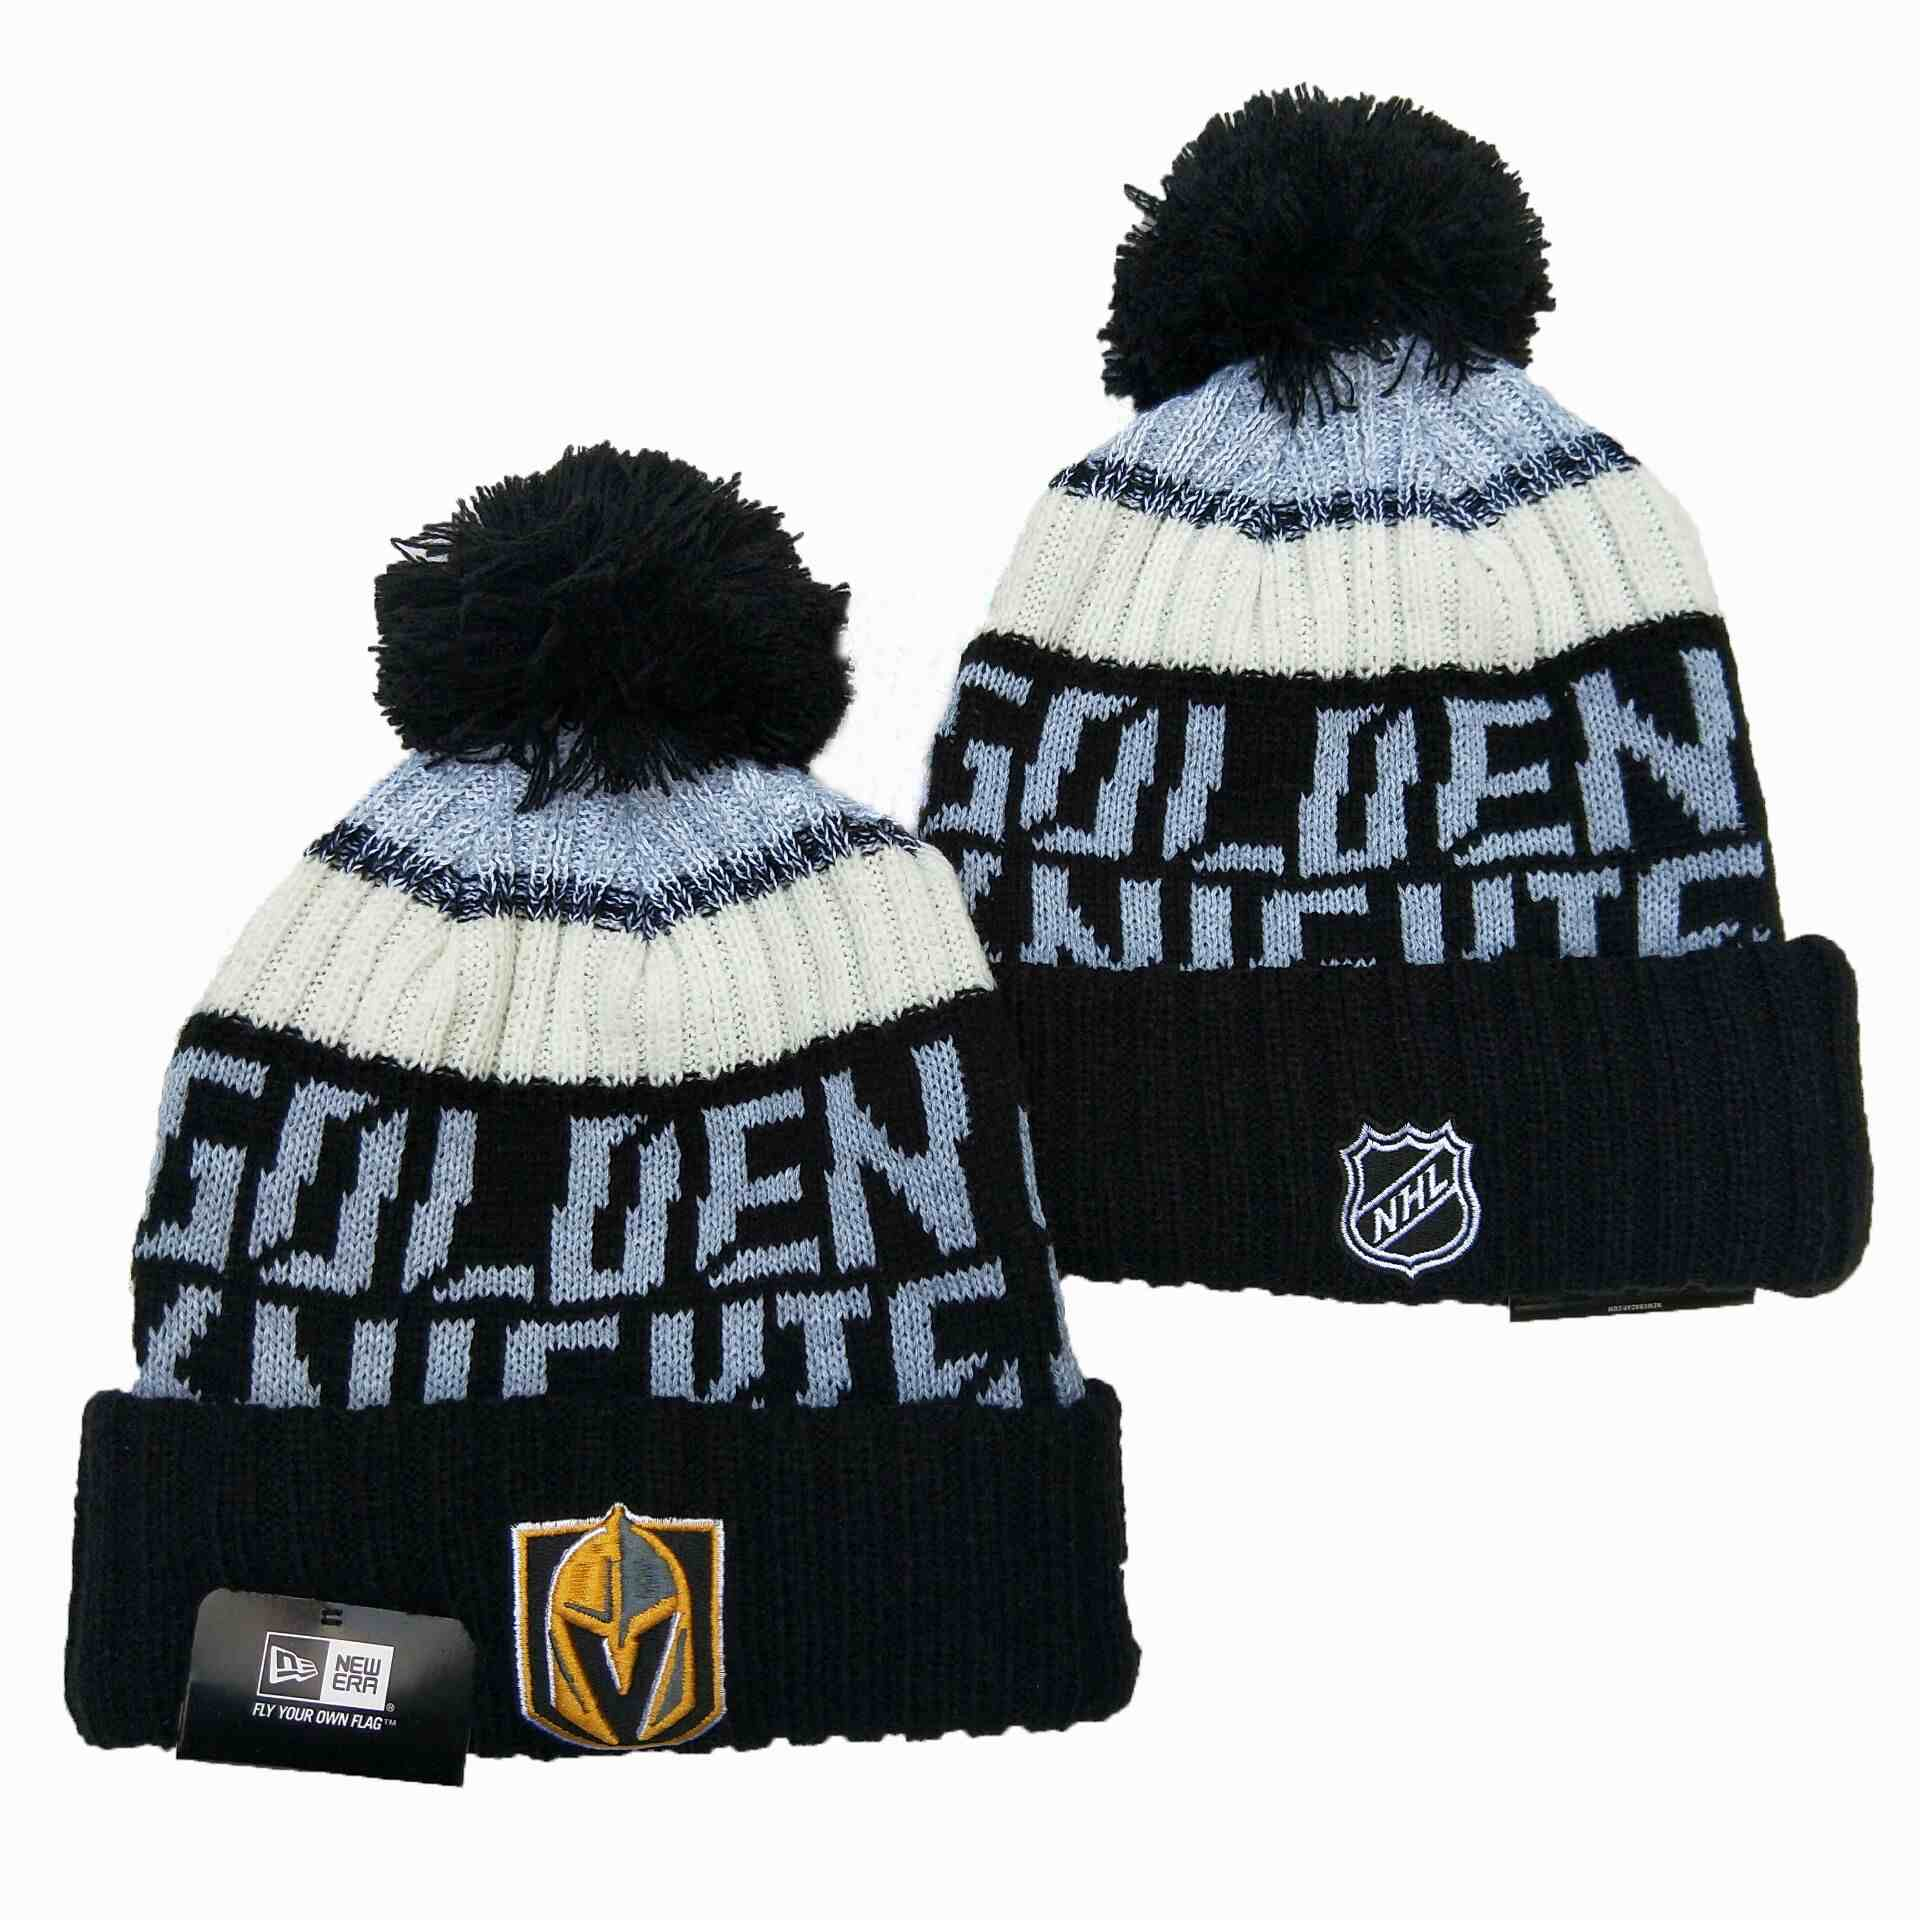 Vegas-Golden-Knights-Team-Logo-Black-Pom-Knit-Hat-YD